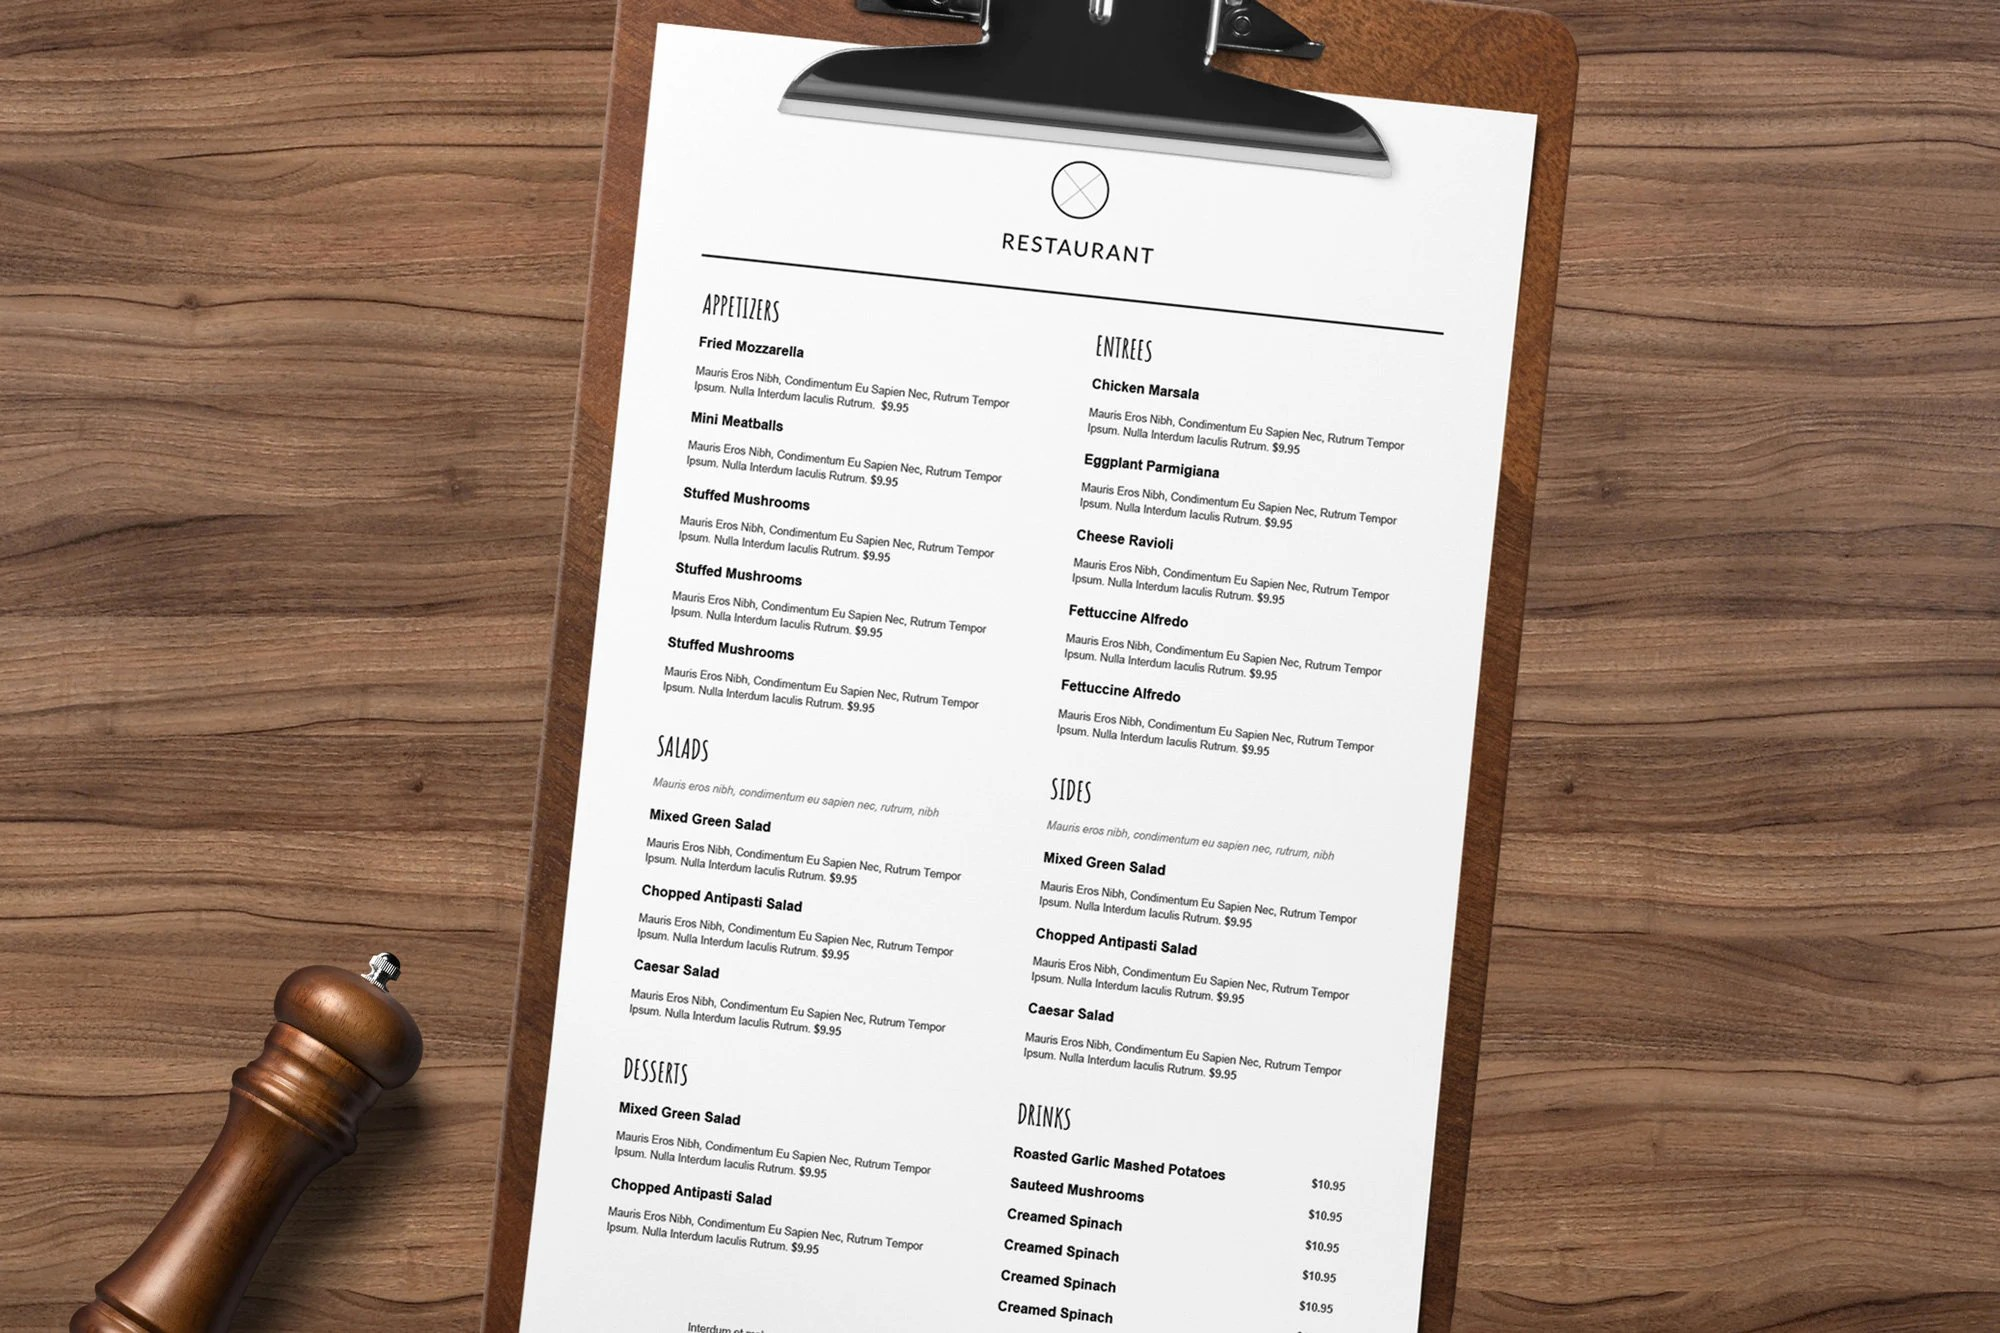 Menu Restaurant Restaurant Menu Restaurant Menu Template Etsy